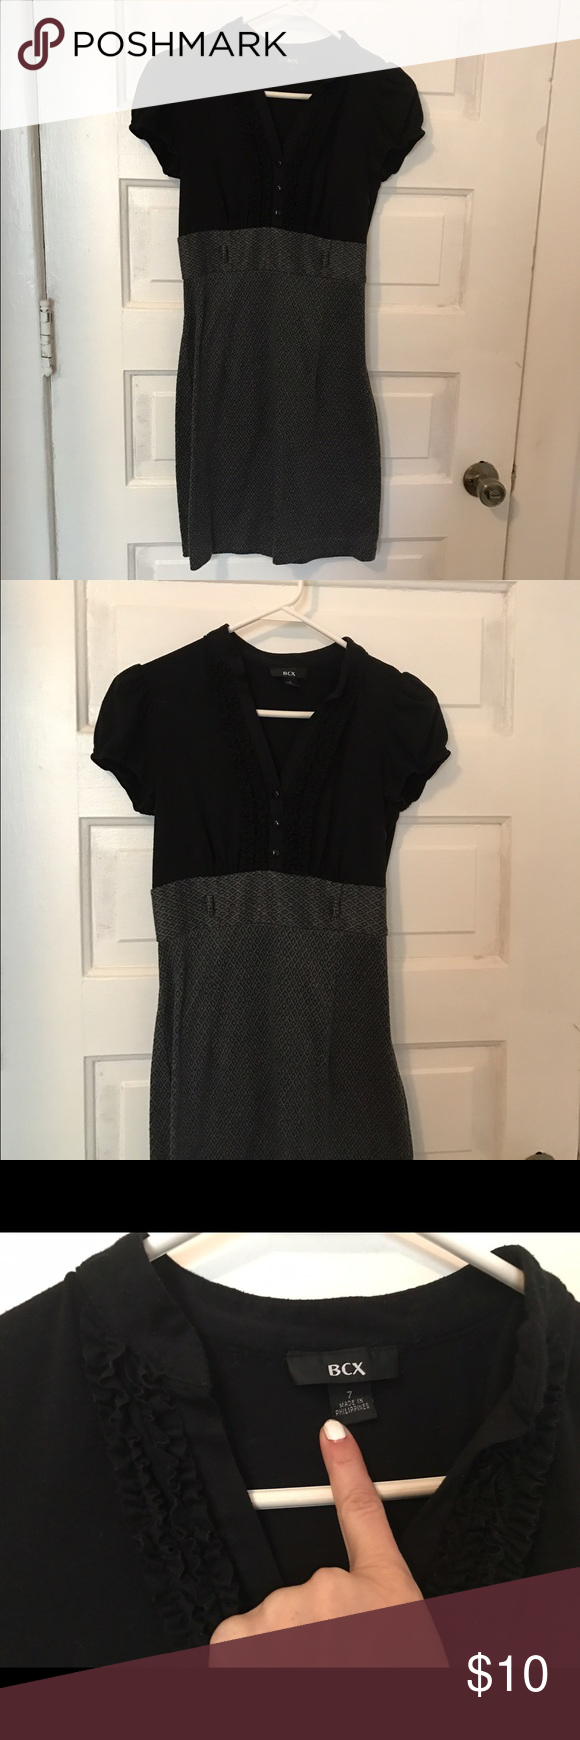 5 items for $35: Black professional dress Women's black professional dress. Grey and black colors. Knee length. Could be worn to work or out with friends.  Size 7 but a small 7. BCX Dresses Mini